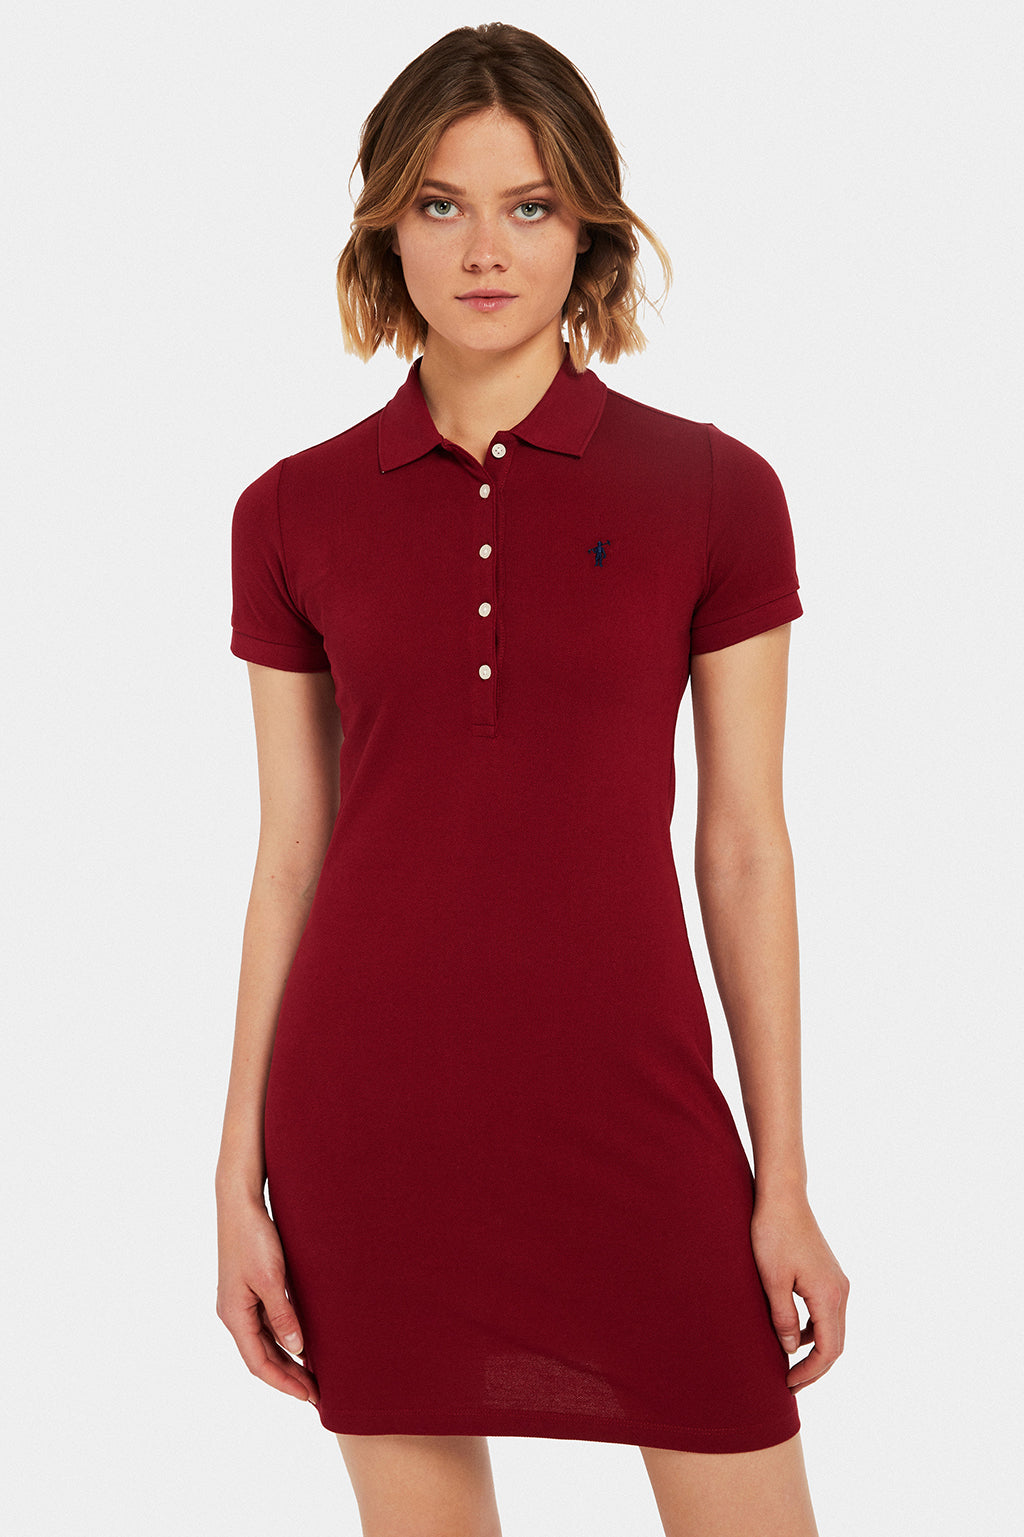 Red polo dress